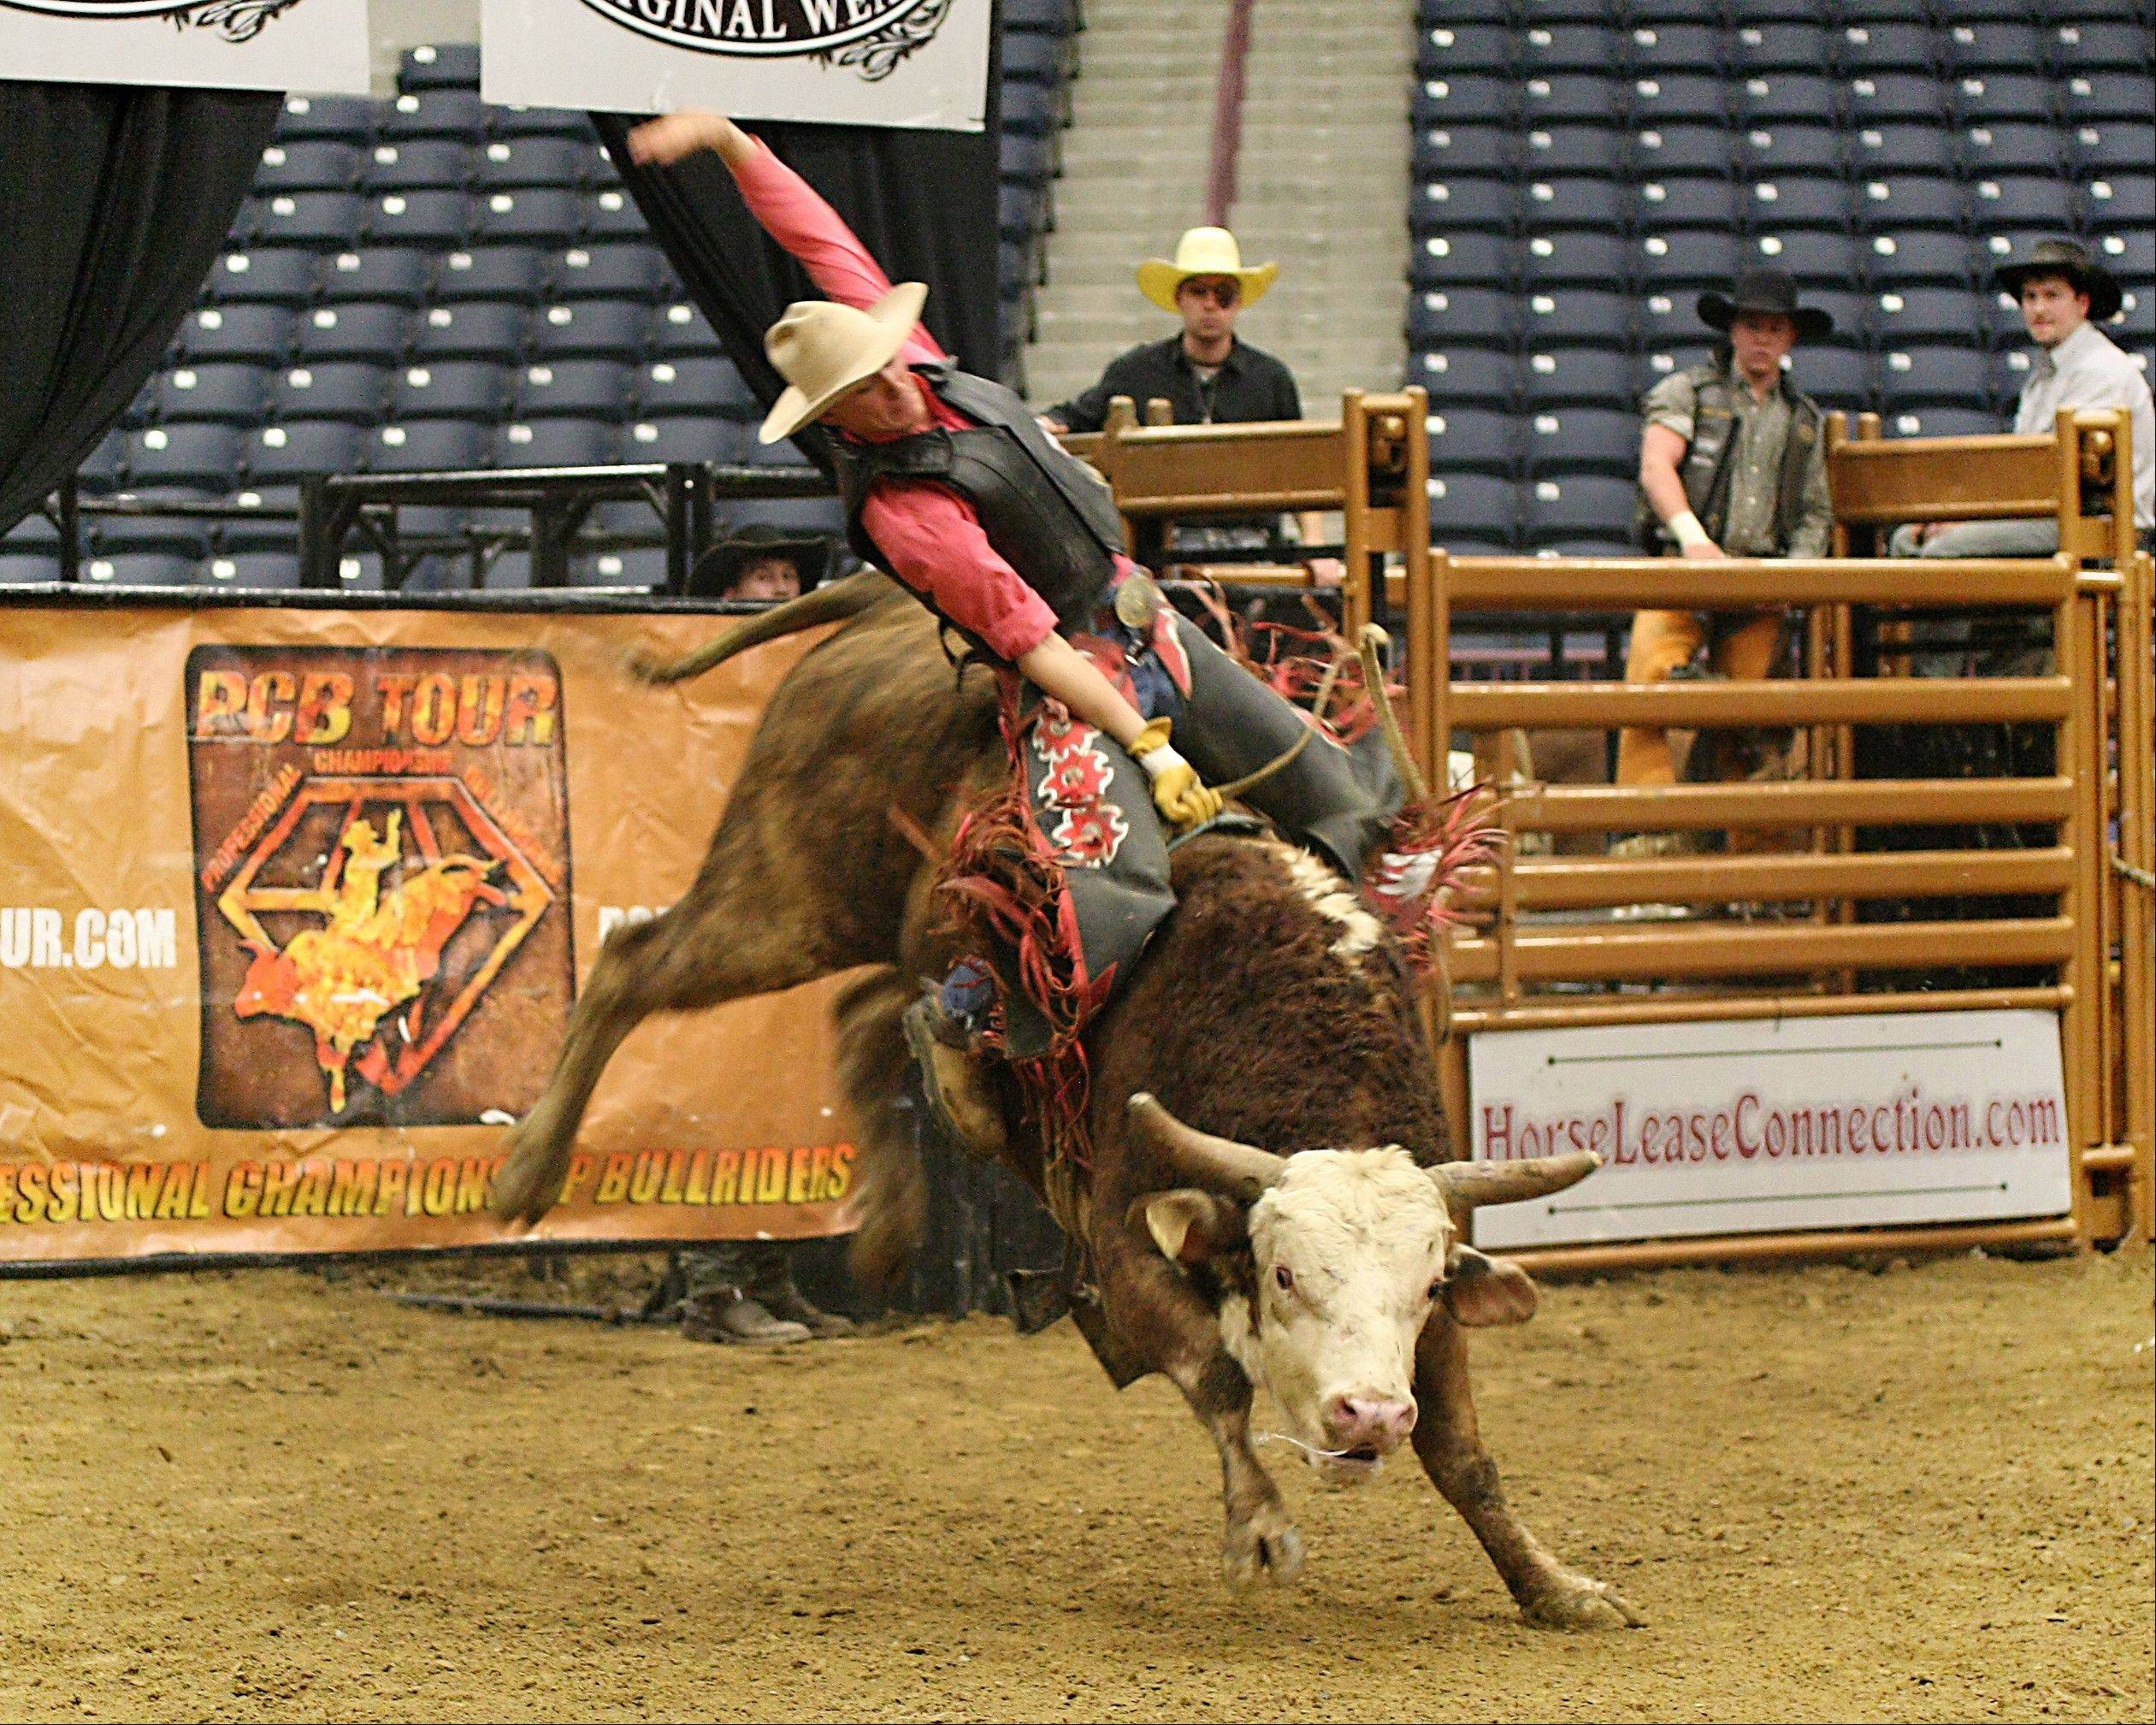 The Professional Championship Bullriders World Tour Finale VIII comes to the Sears Centre Arena in Hoffman Estates on Friday and Saturday, Jan. 31 and Feb. 1.